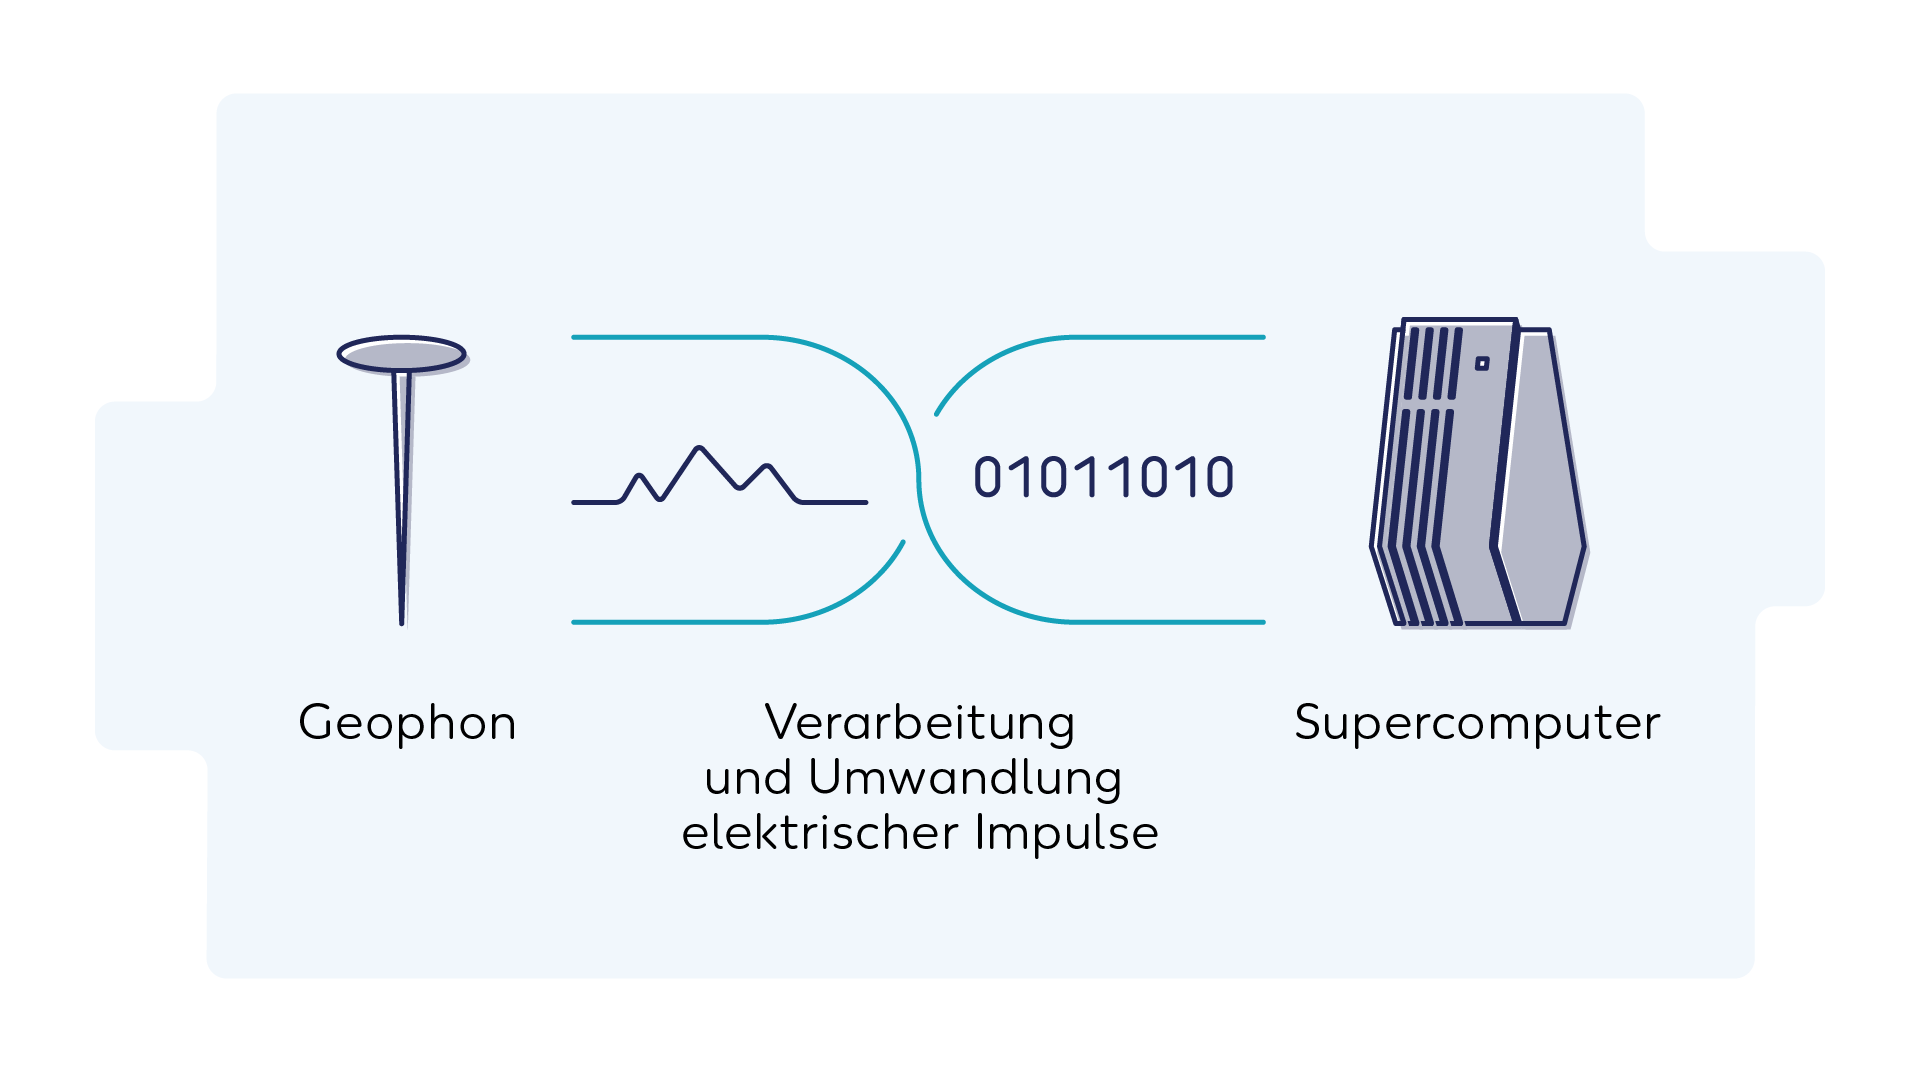 Wintershall Dea Geophon elektrische Impulse Supercomputer